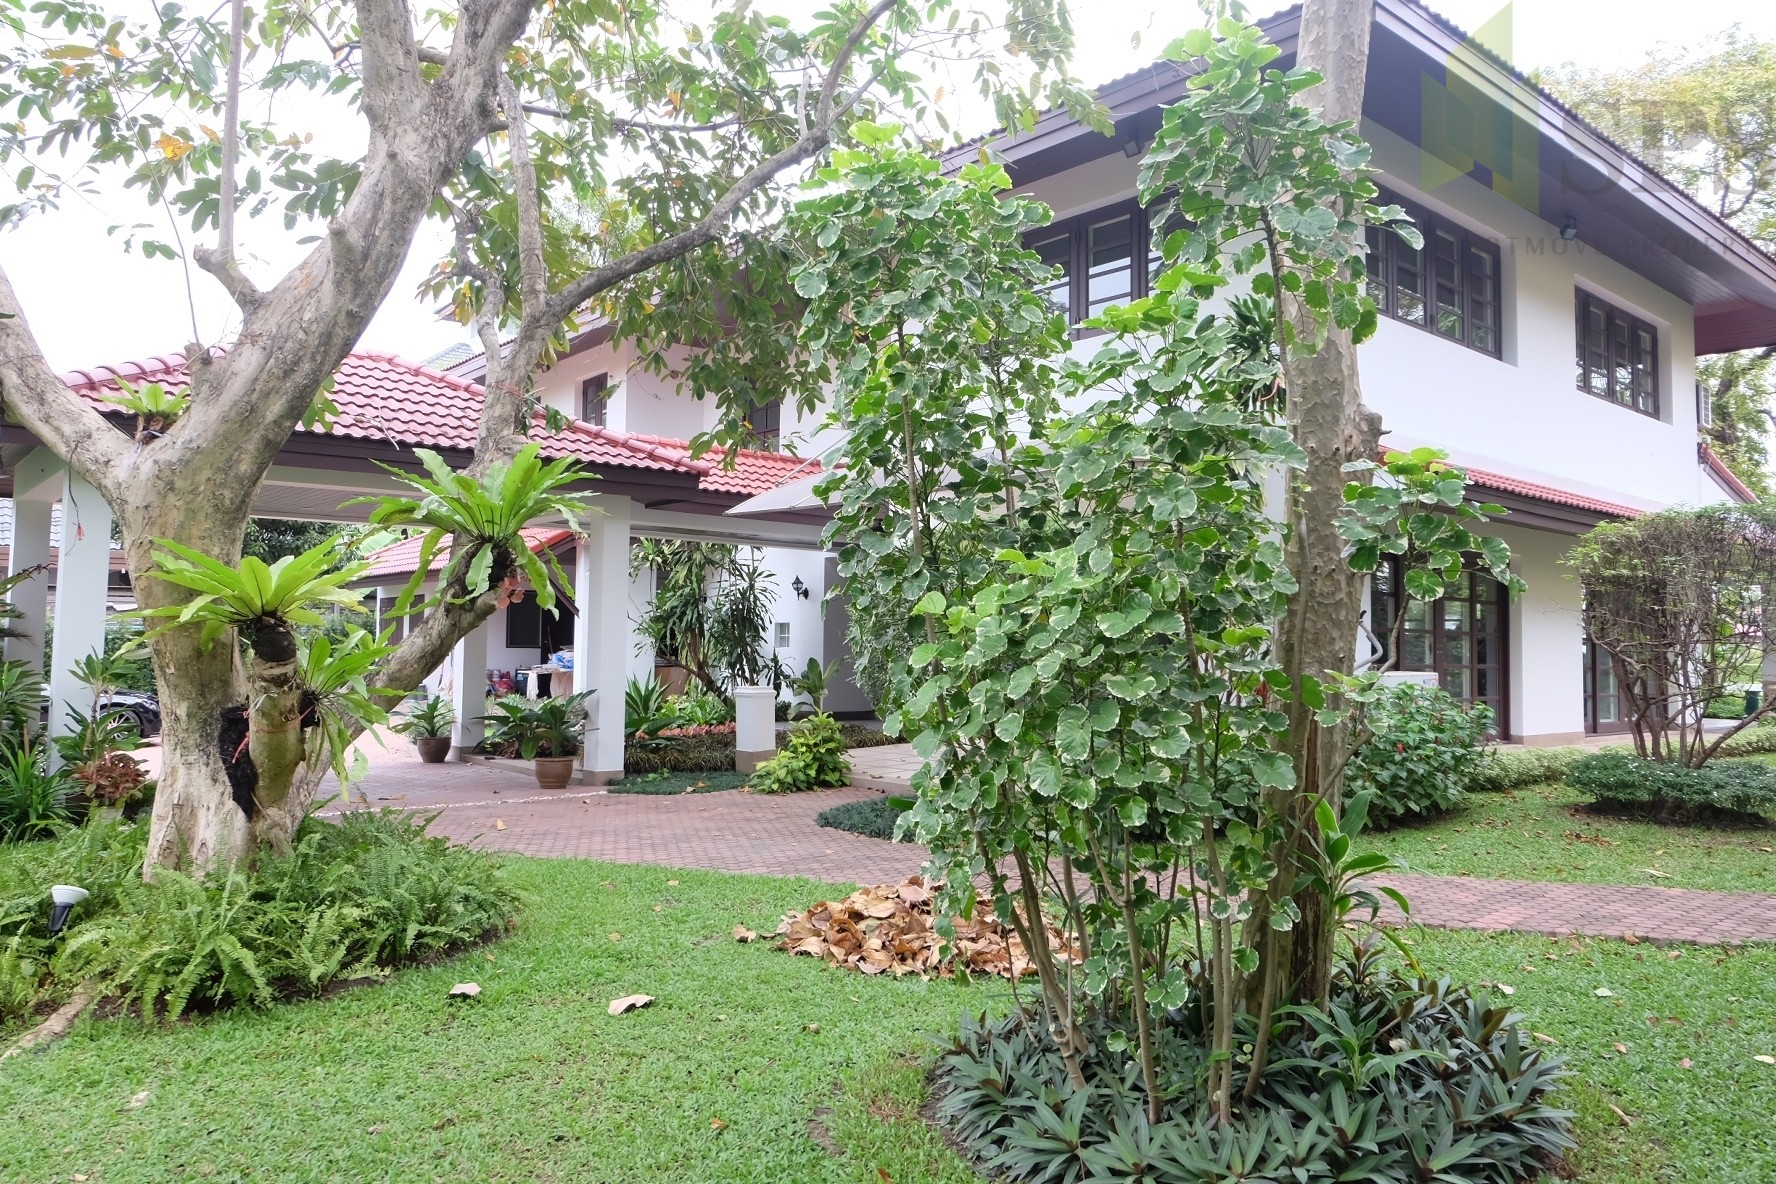 For Rent Single House Lakeside Villa 1(SPS-GH91)